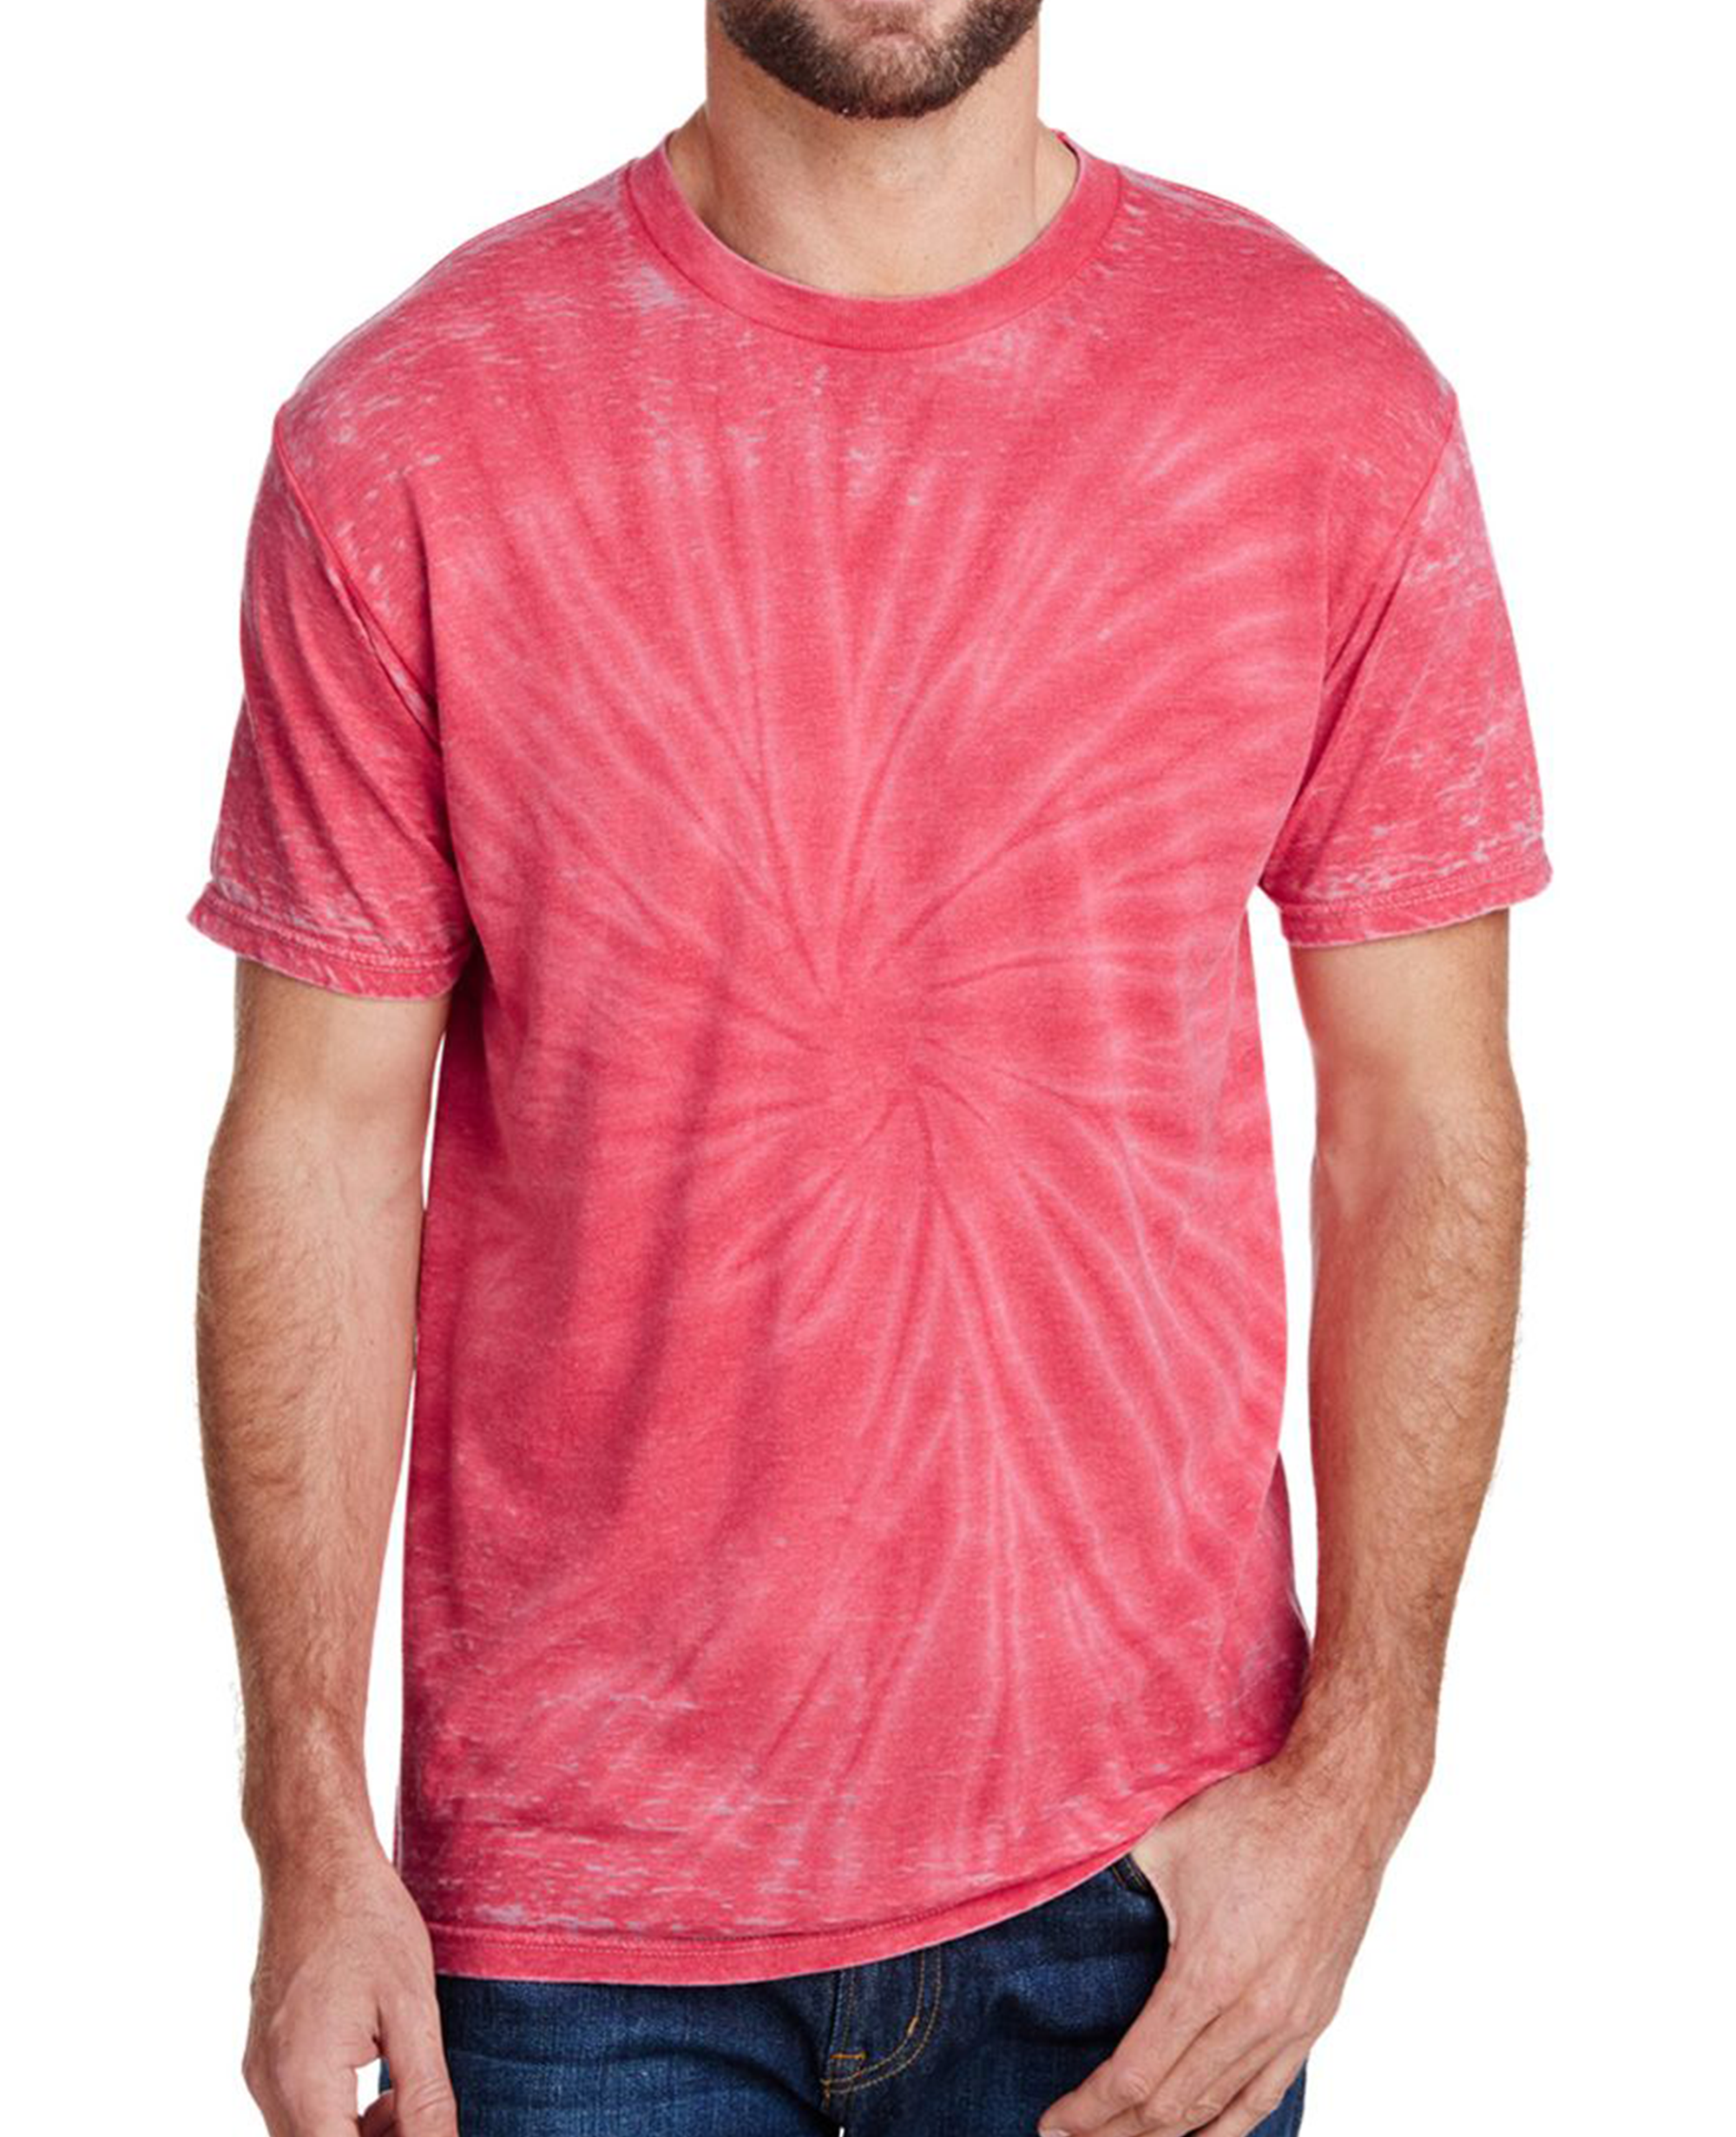 Burnout Festival Tie Dye T-shirt in Red - T-Shirts - Tie-Dye - BRANMA